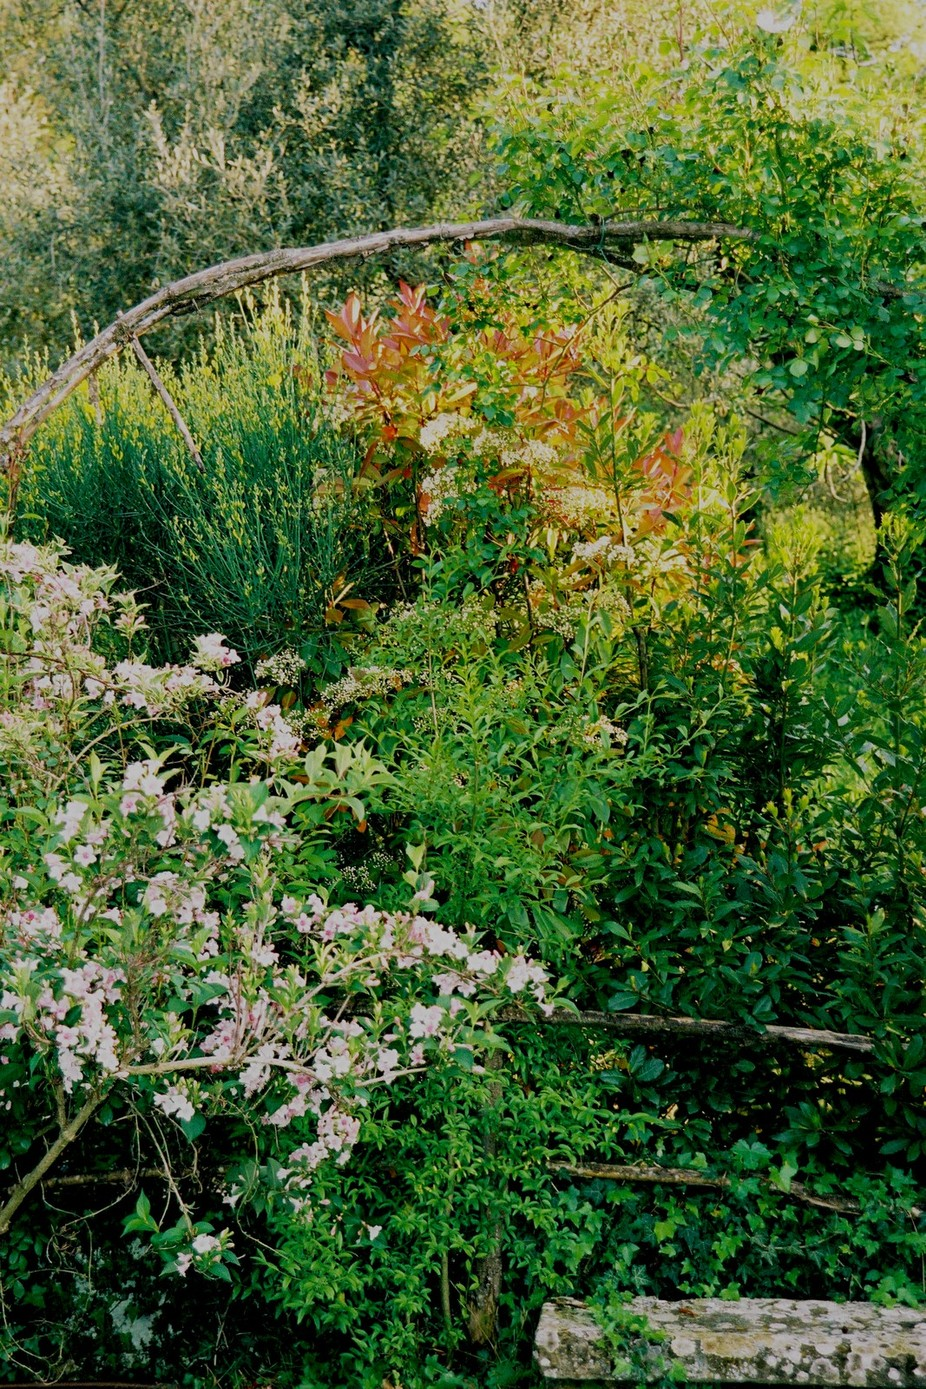 Looking out through a window onto a beautifully overgrown garden in Italy in 2006..it was early spring